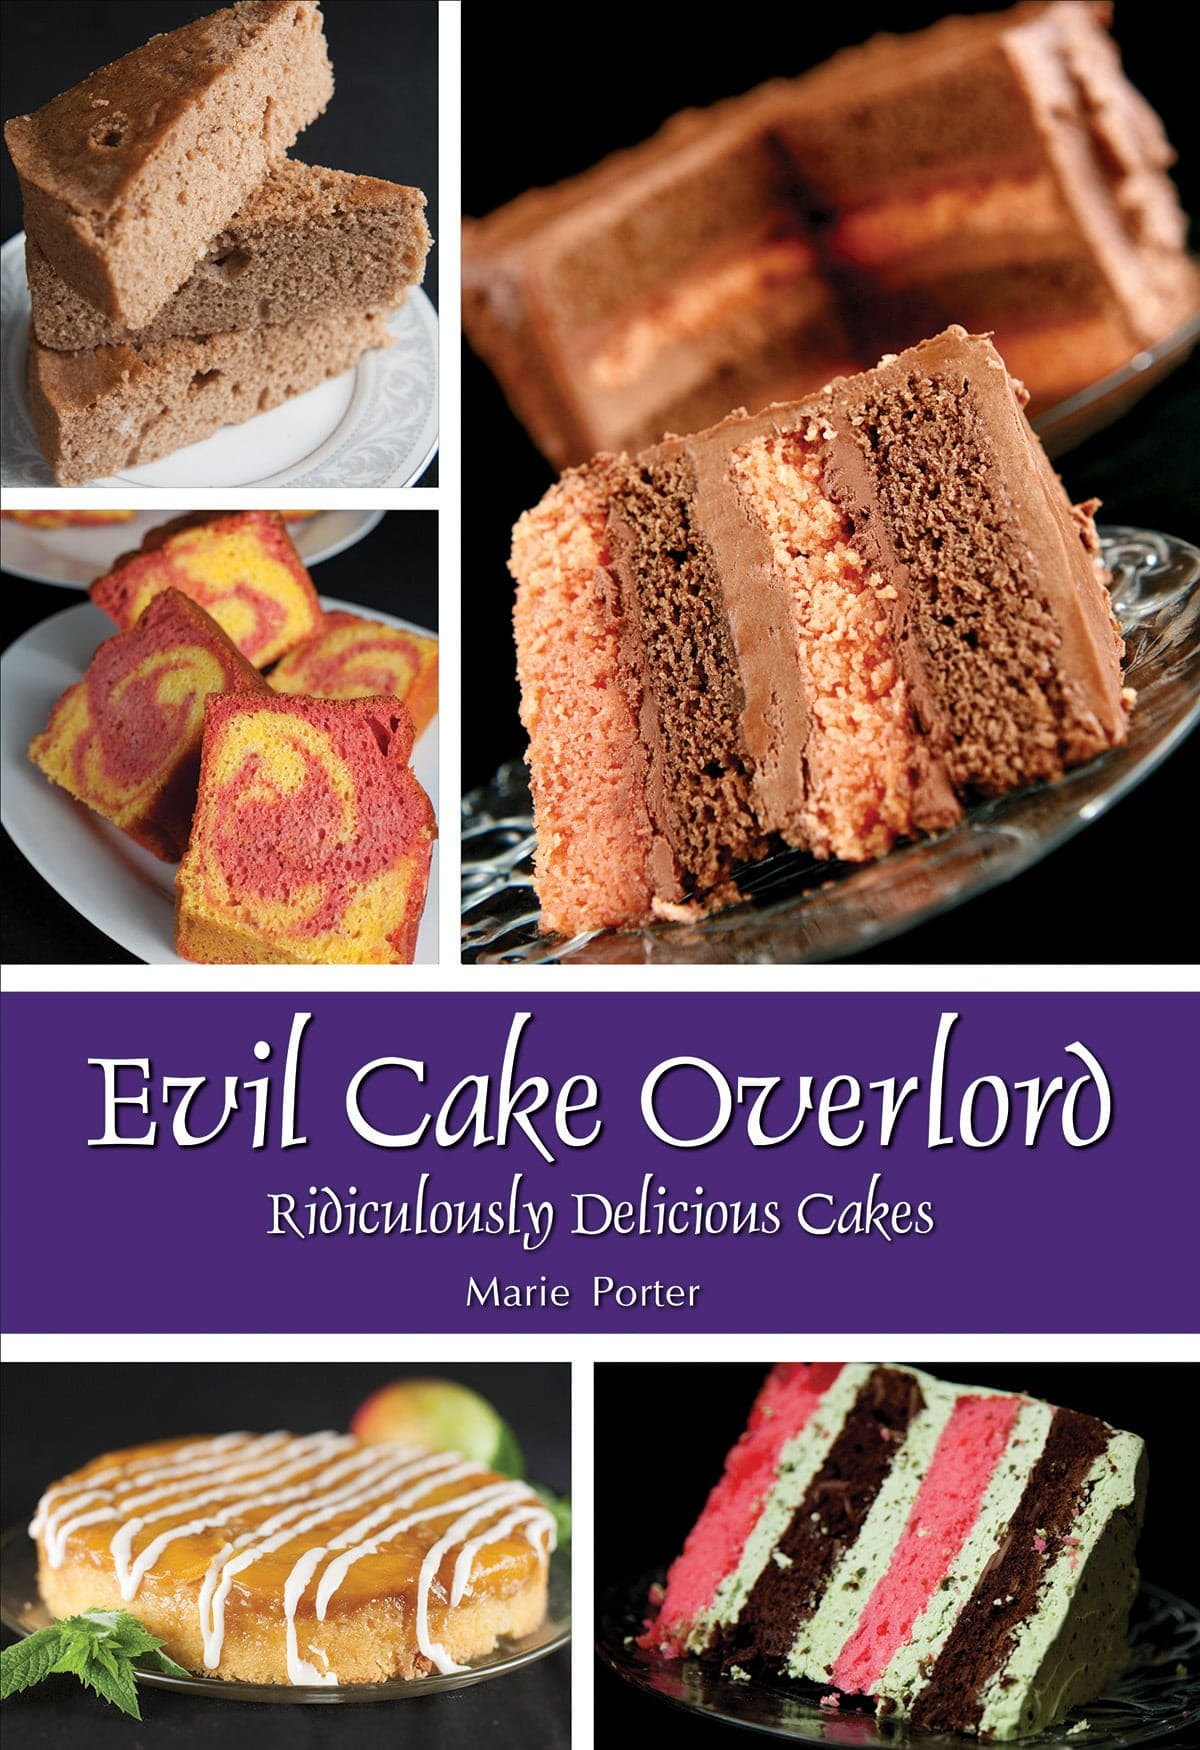 "Cover image for the ""Evil Cake Overlord"" cookbook.  A band of purple crosses the cover, which displays 5 different cakes."